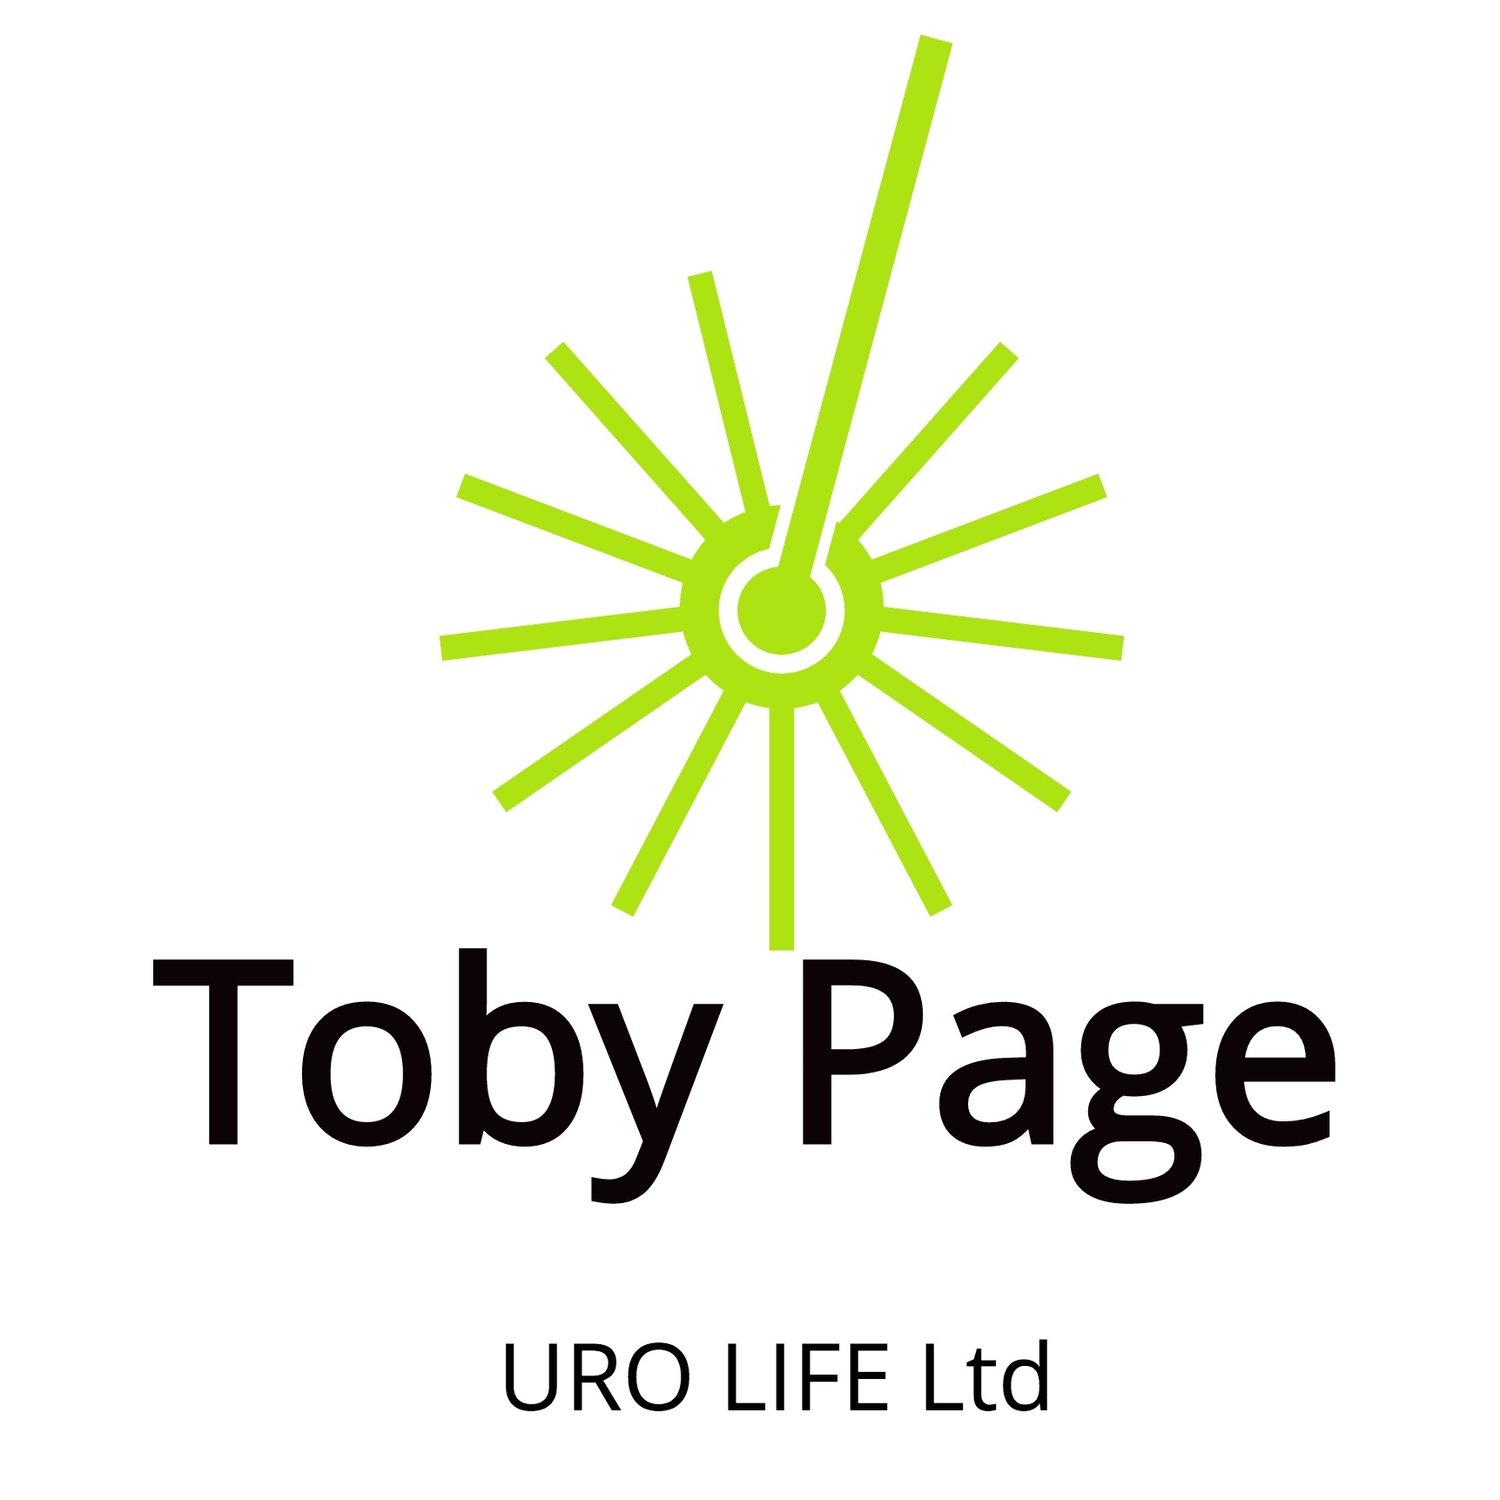 Toby Page Urology